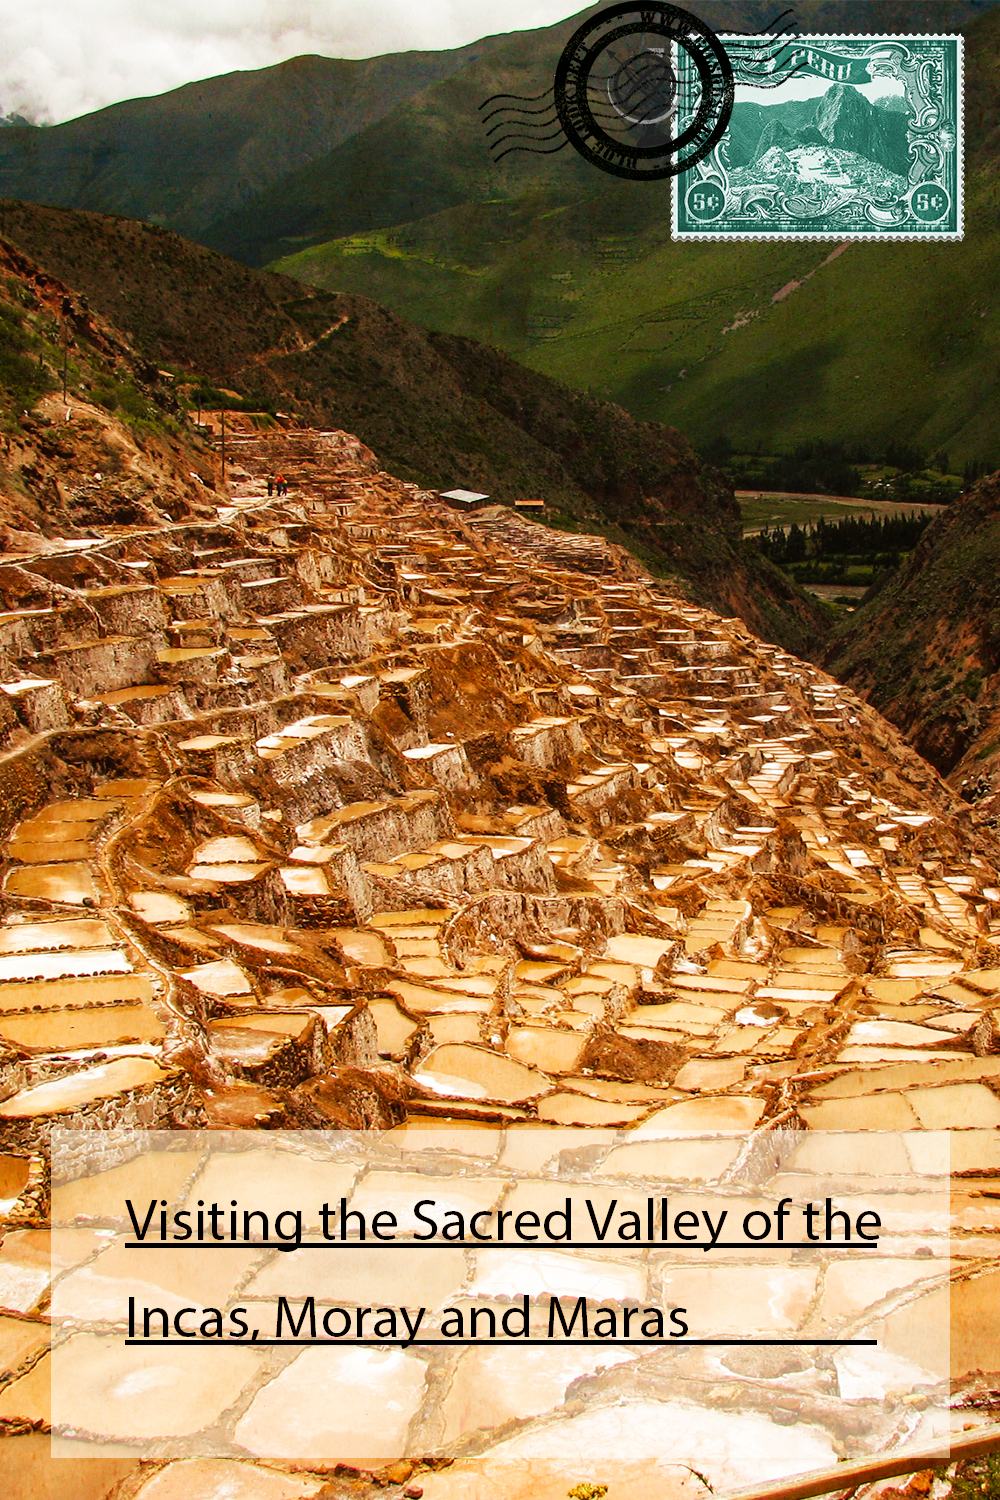 Visiting the Sacred Valley of the Incas, Moray and Maras